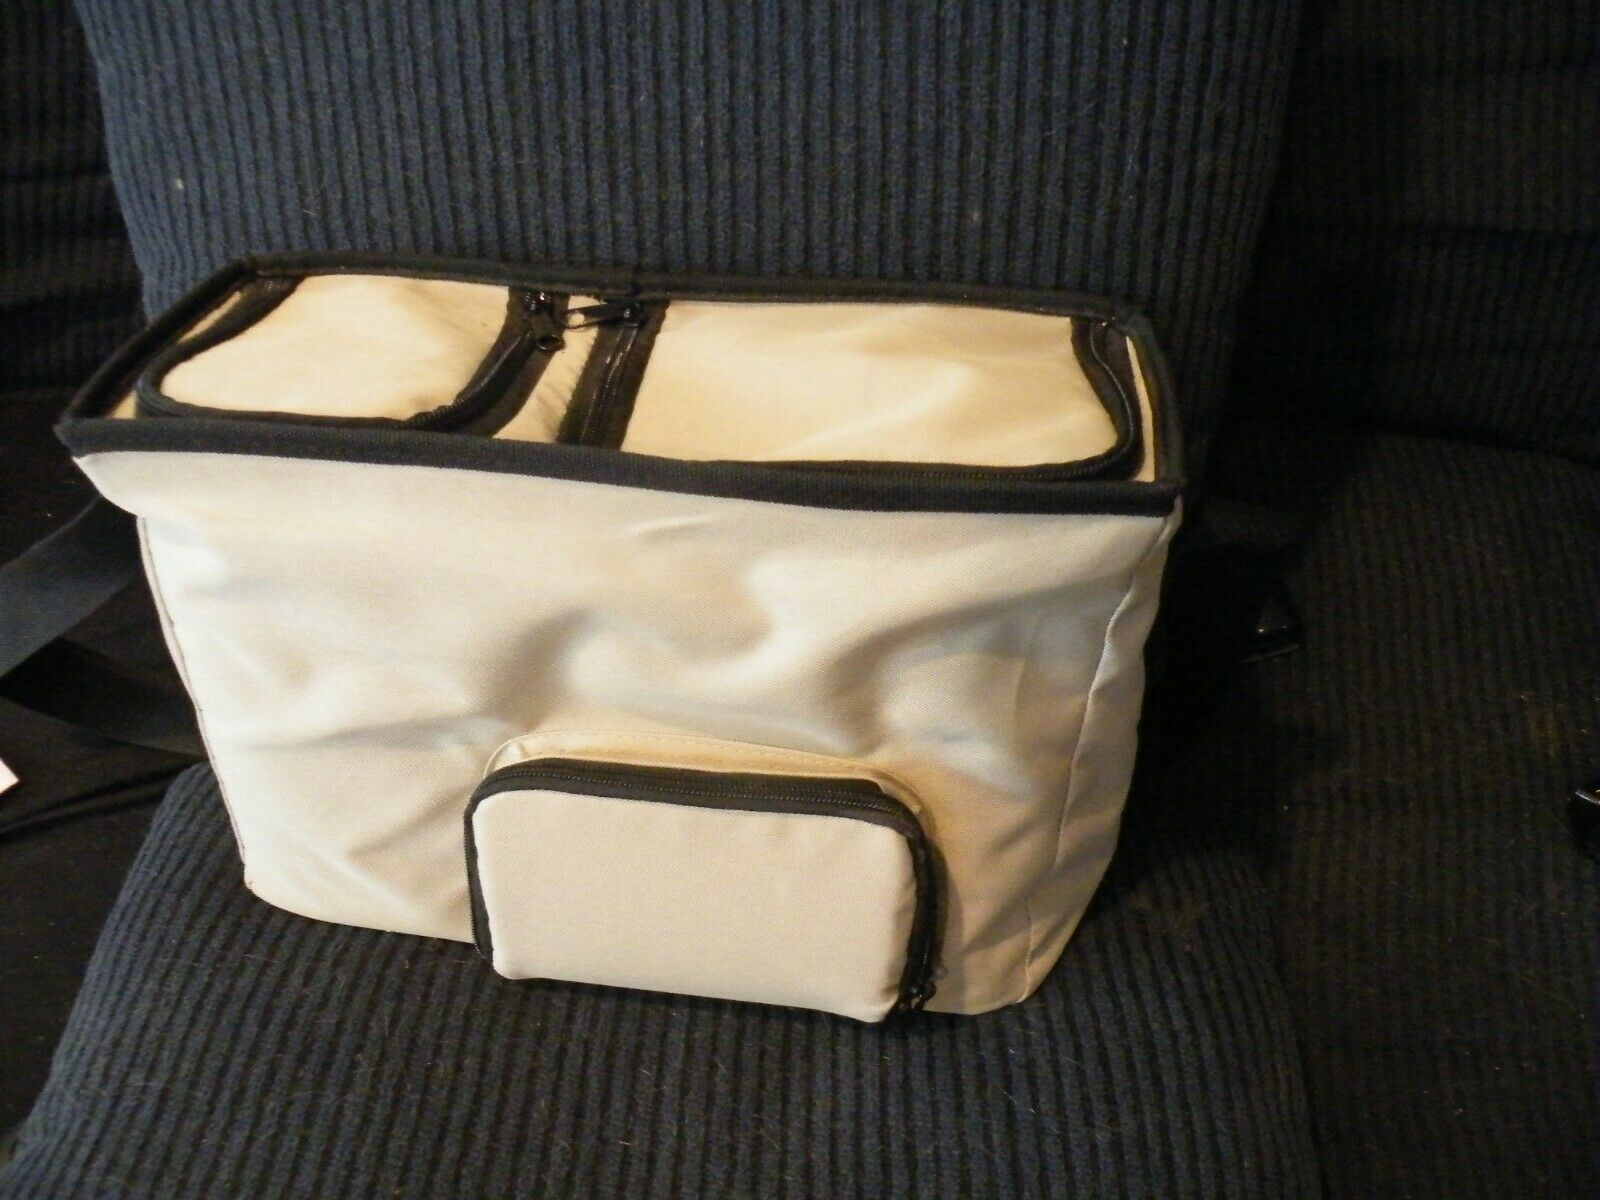 Medela Pump In Style Advanced Personal Double Breast Pump Tan Carry Case Power - $29.99